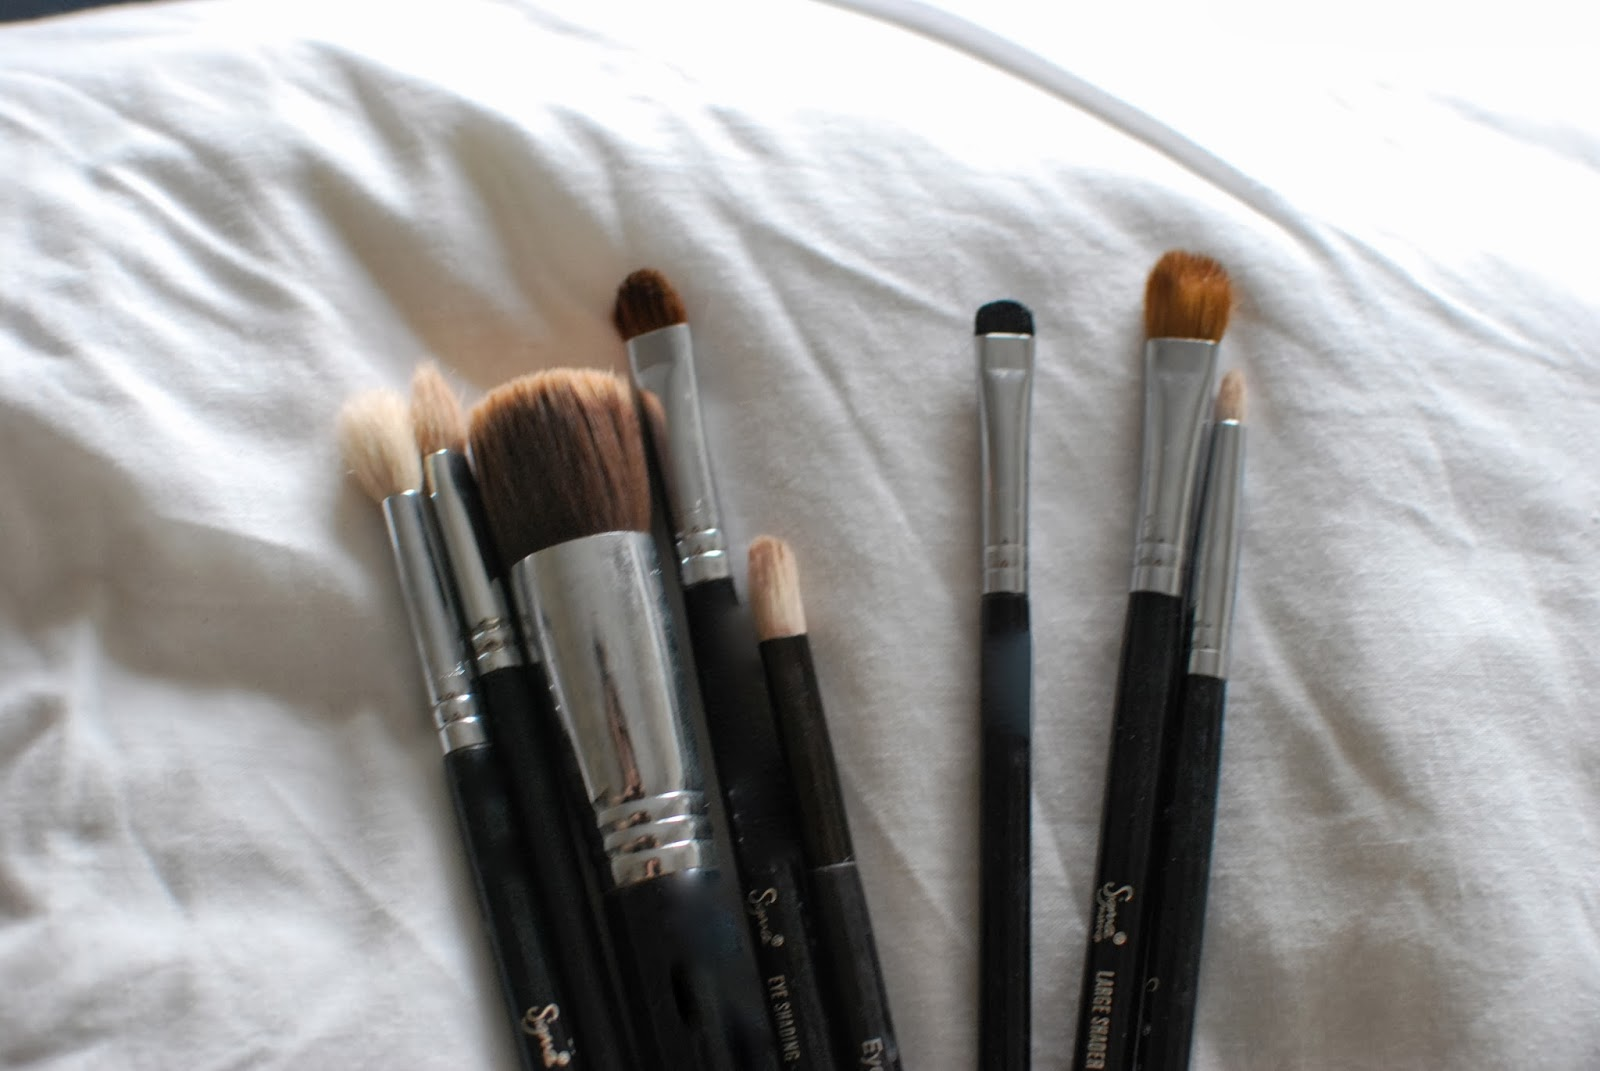 how to clean brushes after nits